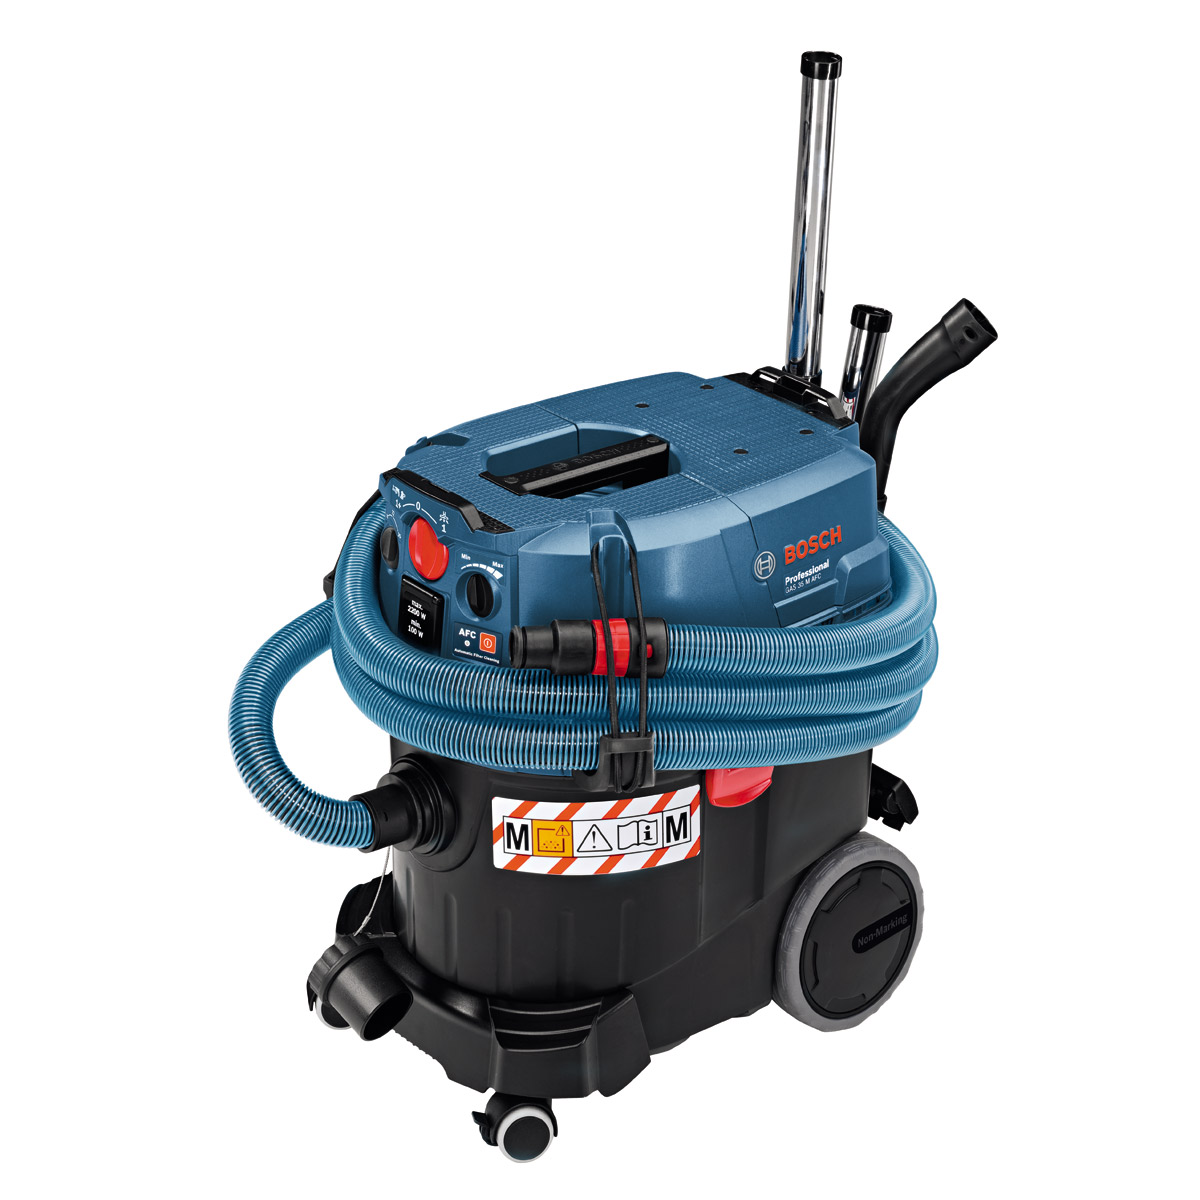 BOSCH GAS35MAFC 110V DUST EXTRACTOR 35L CAPACITY